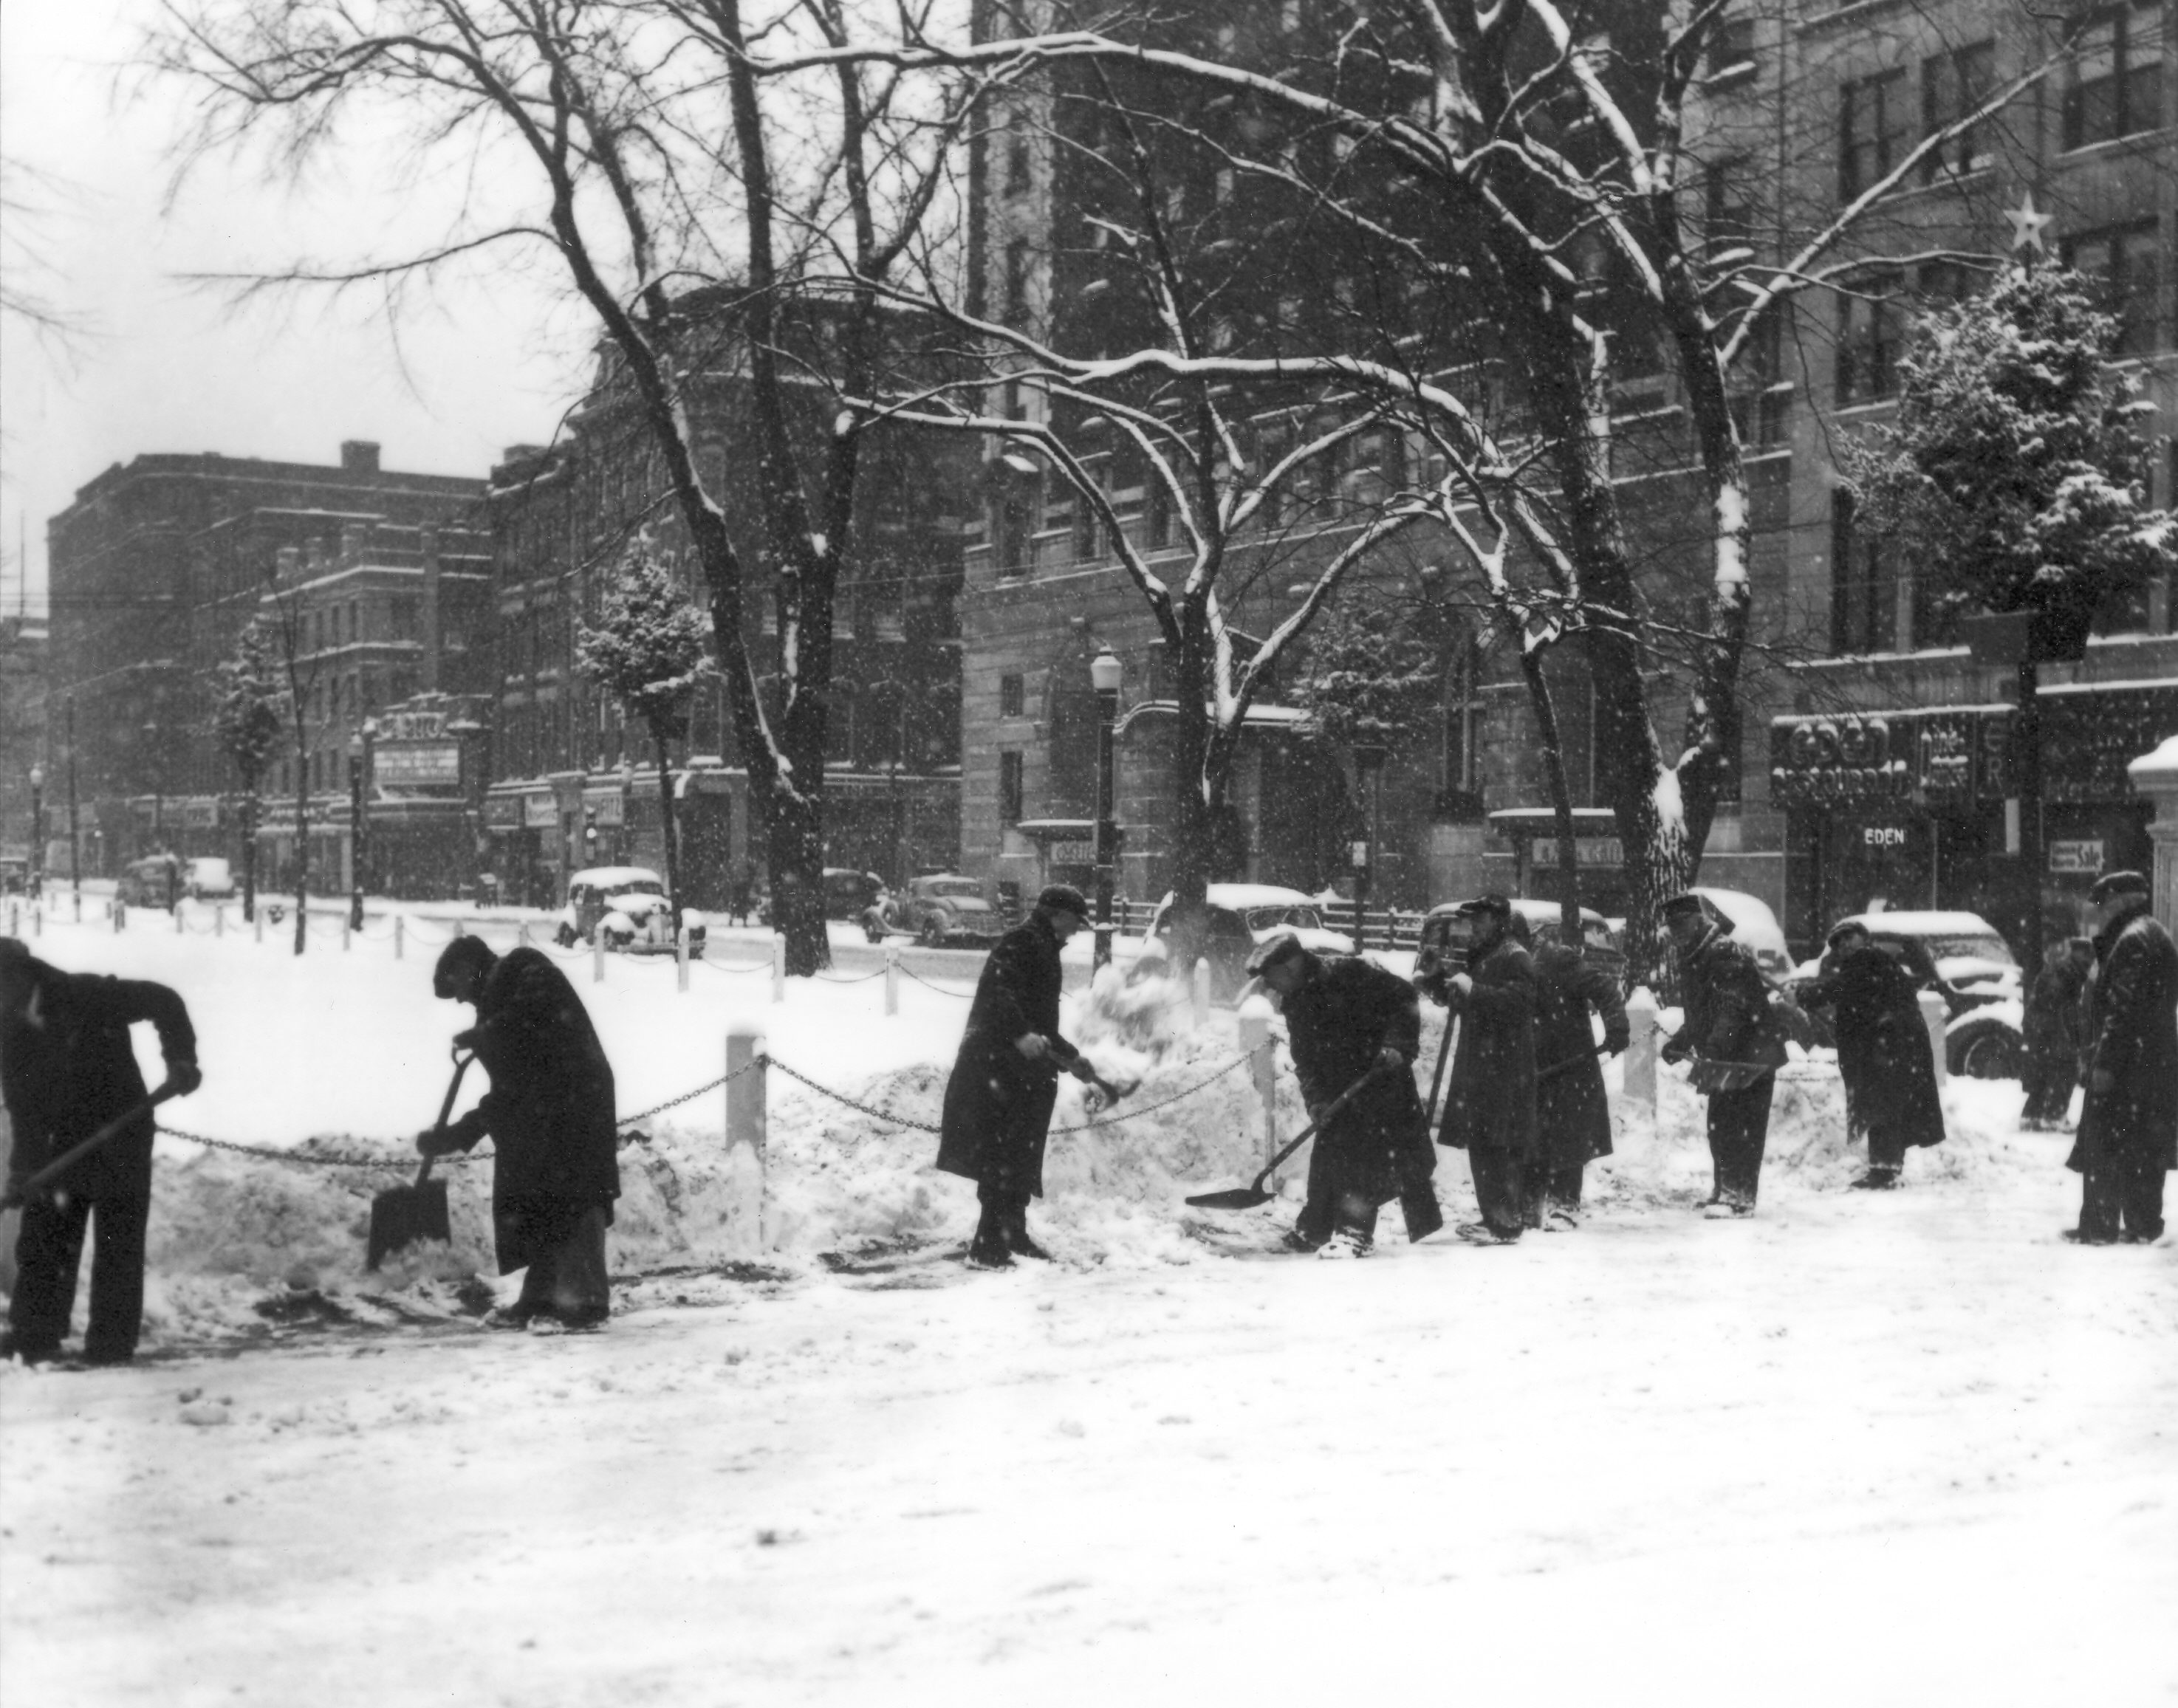 Shoveling snow near Worcester Common (1939)